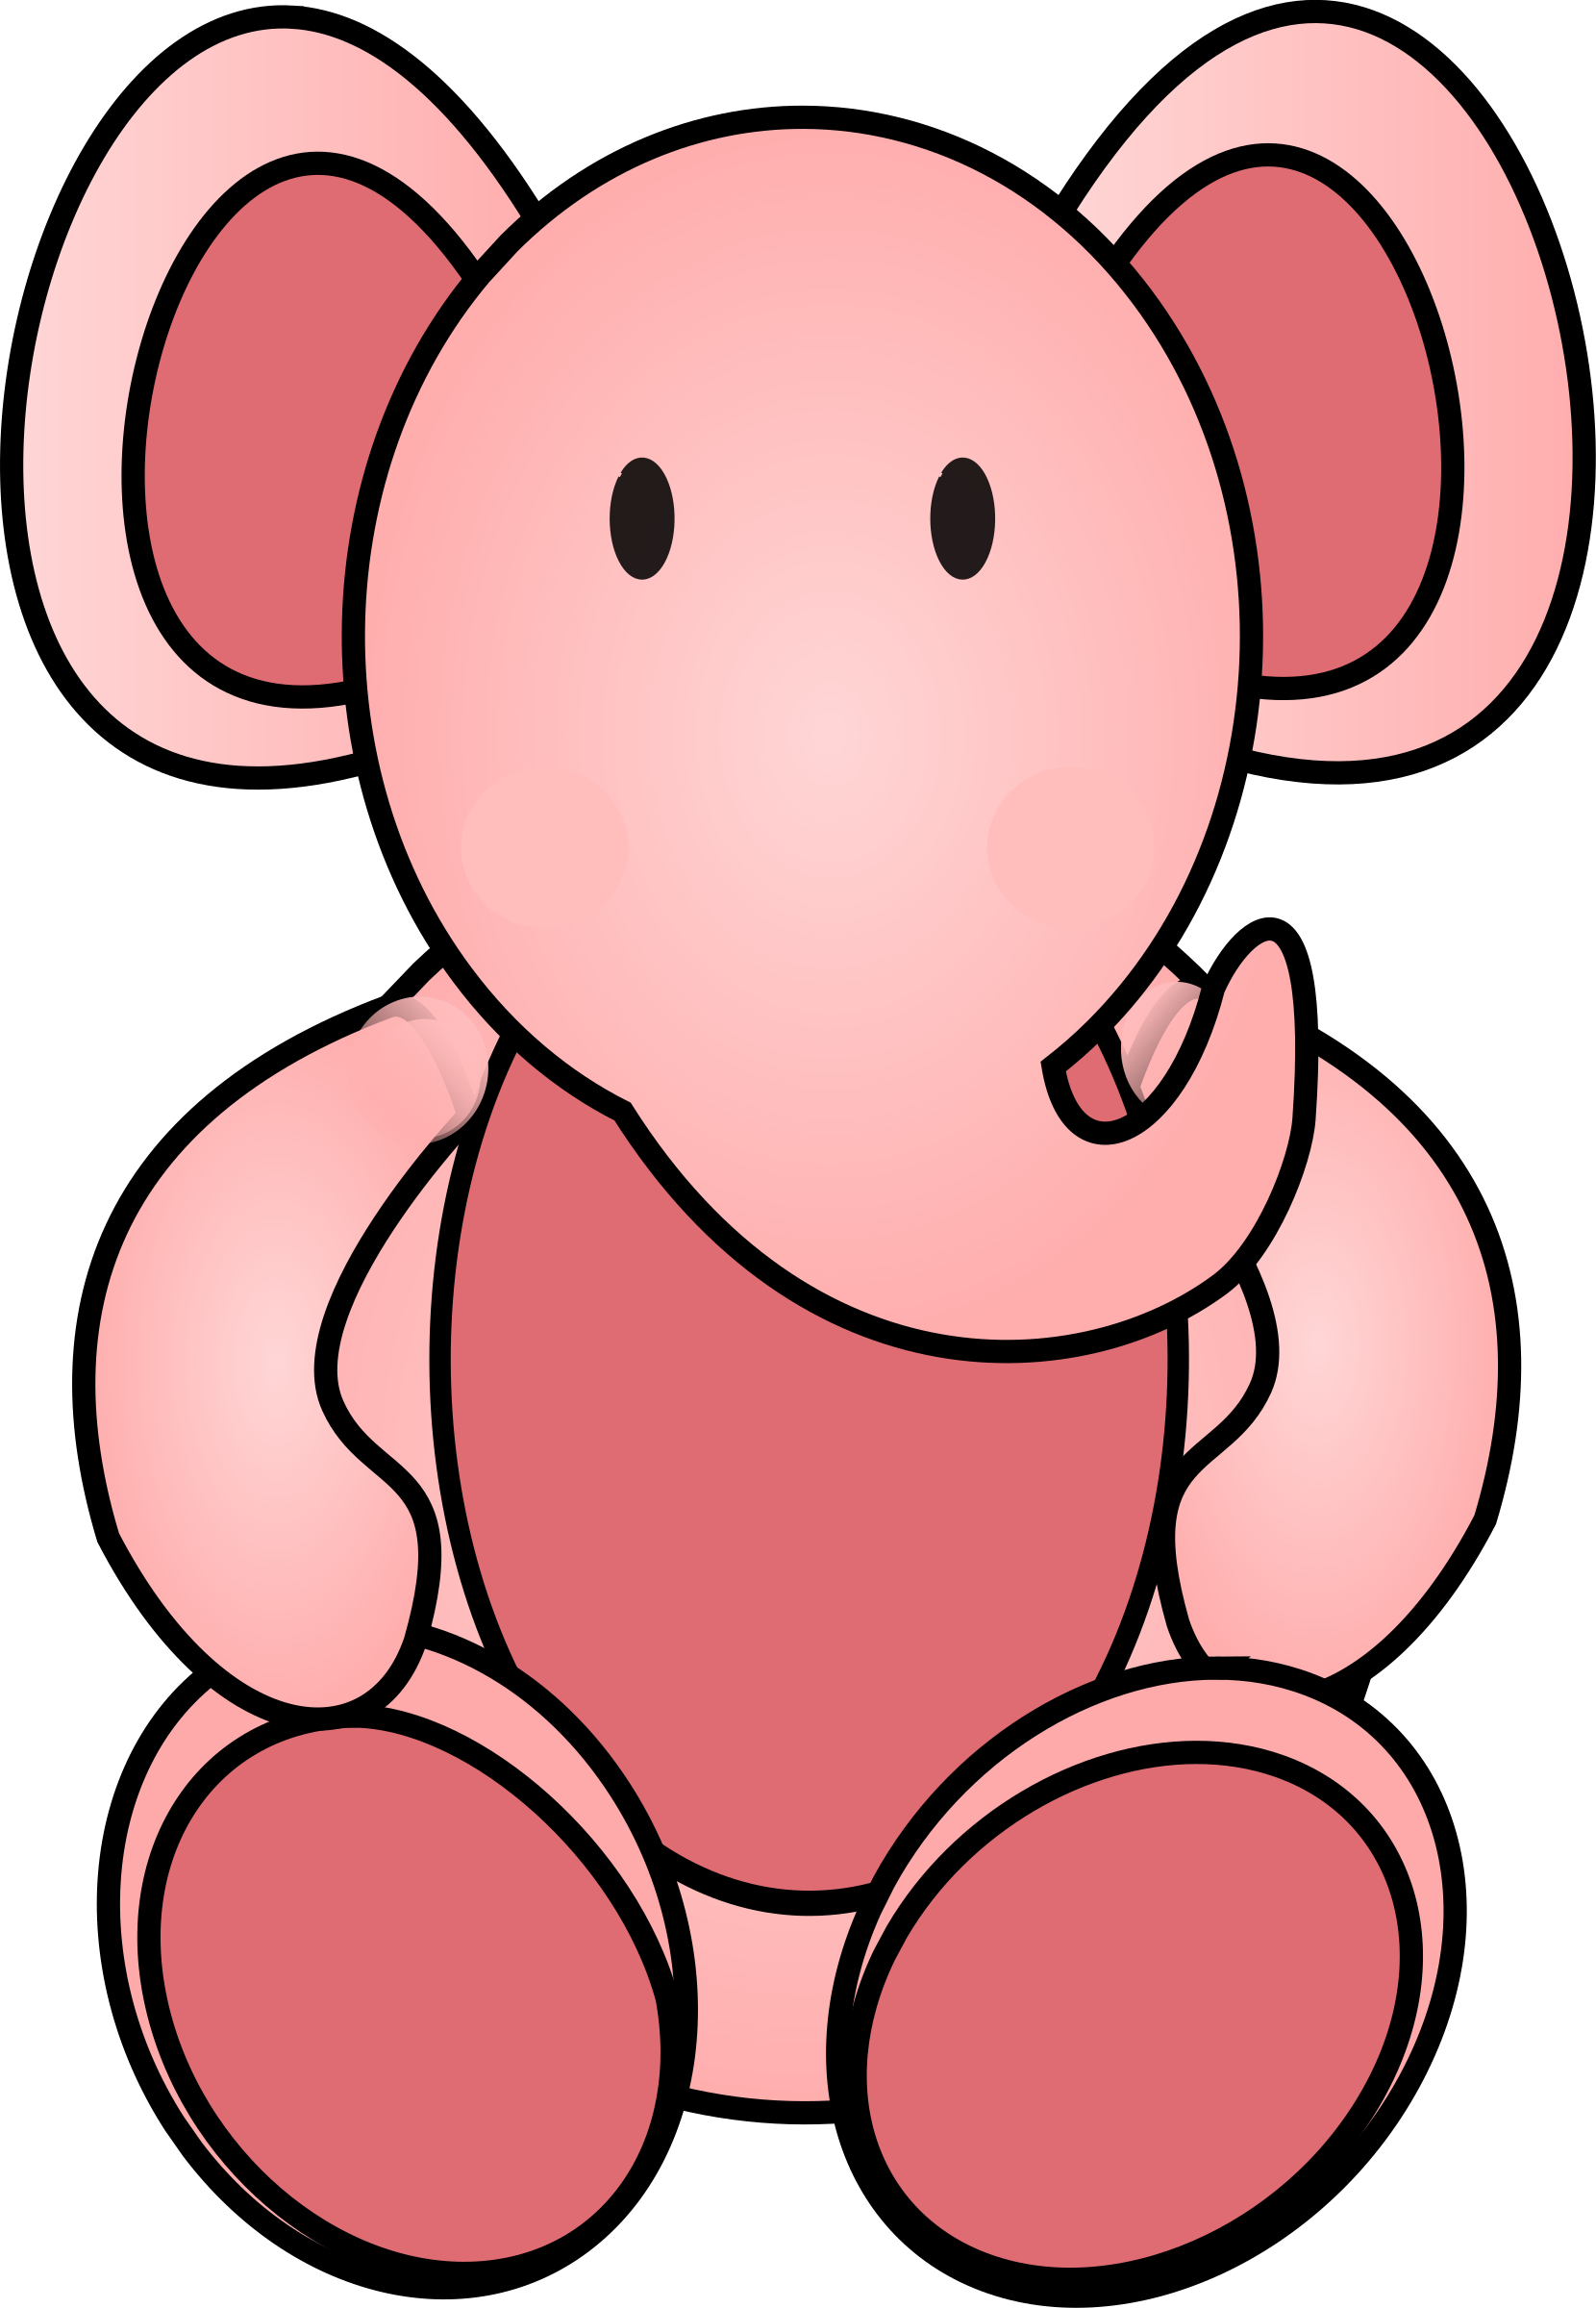 Pink elephant by rdevries